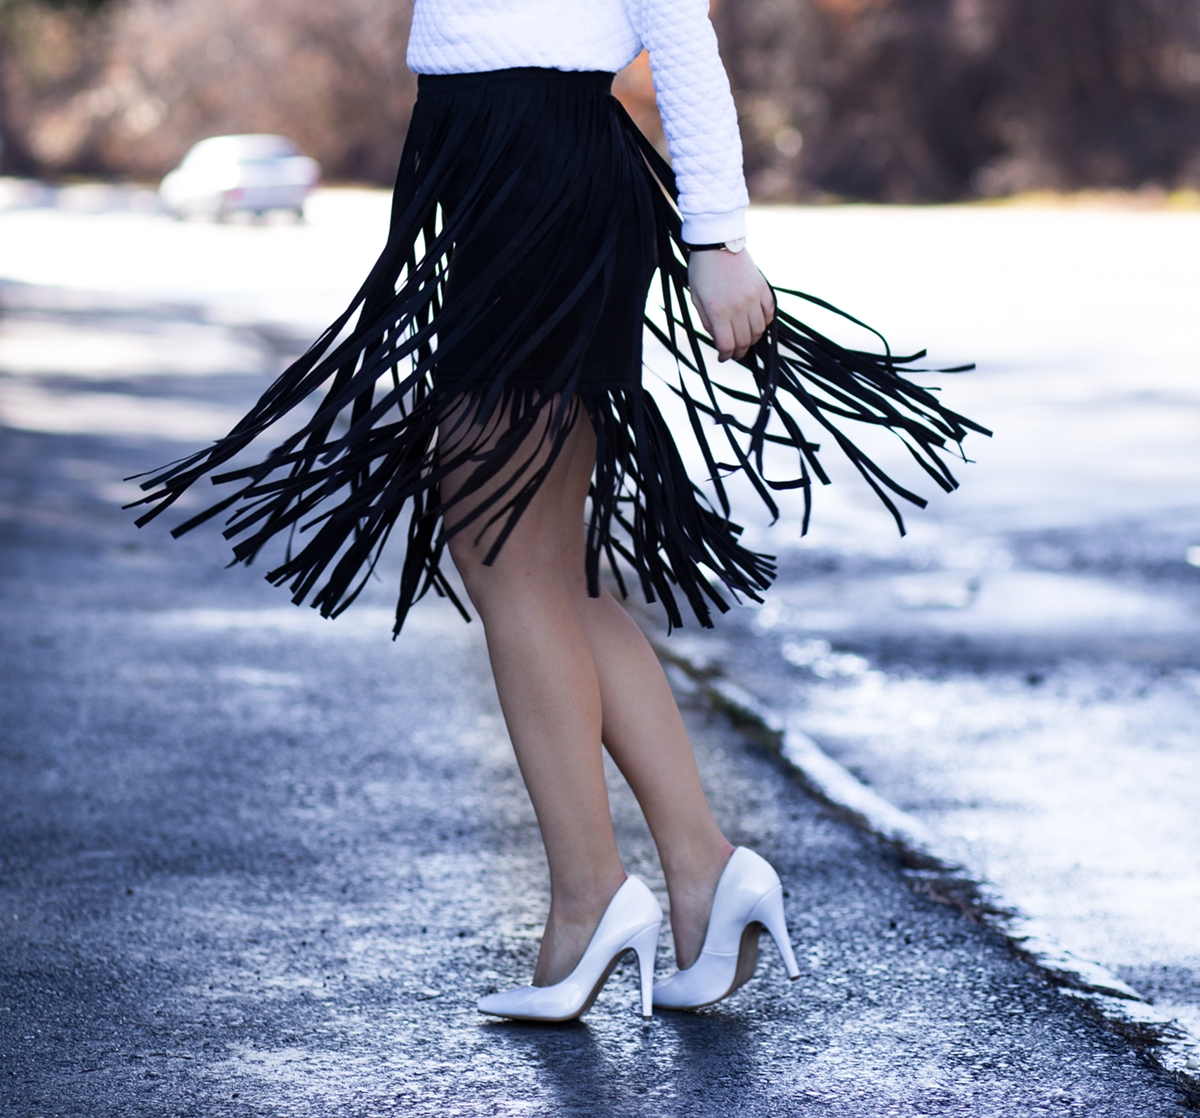 Street style: black fringe skirt, movement, pinterest, tumblr, weheartit, fashion, blogger. Andreea Ristea